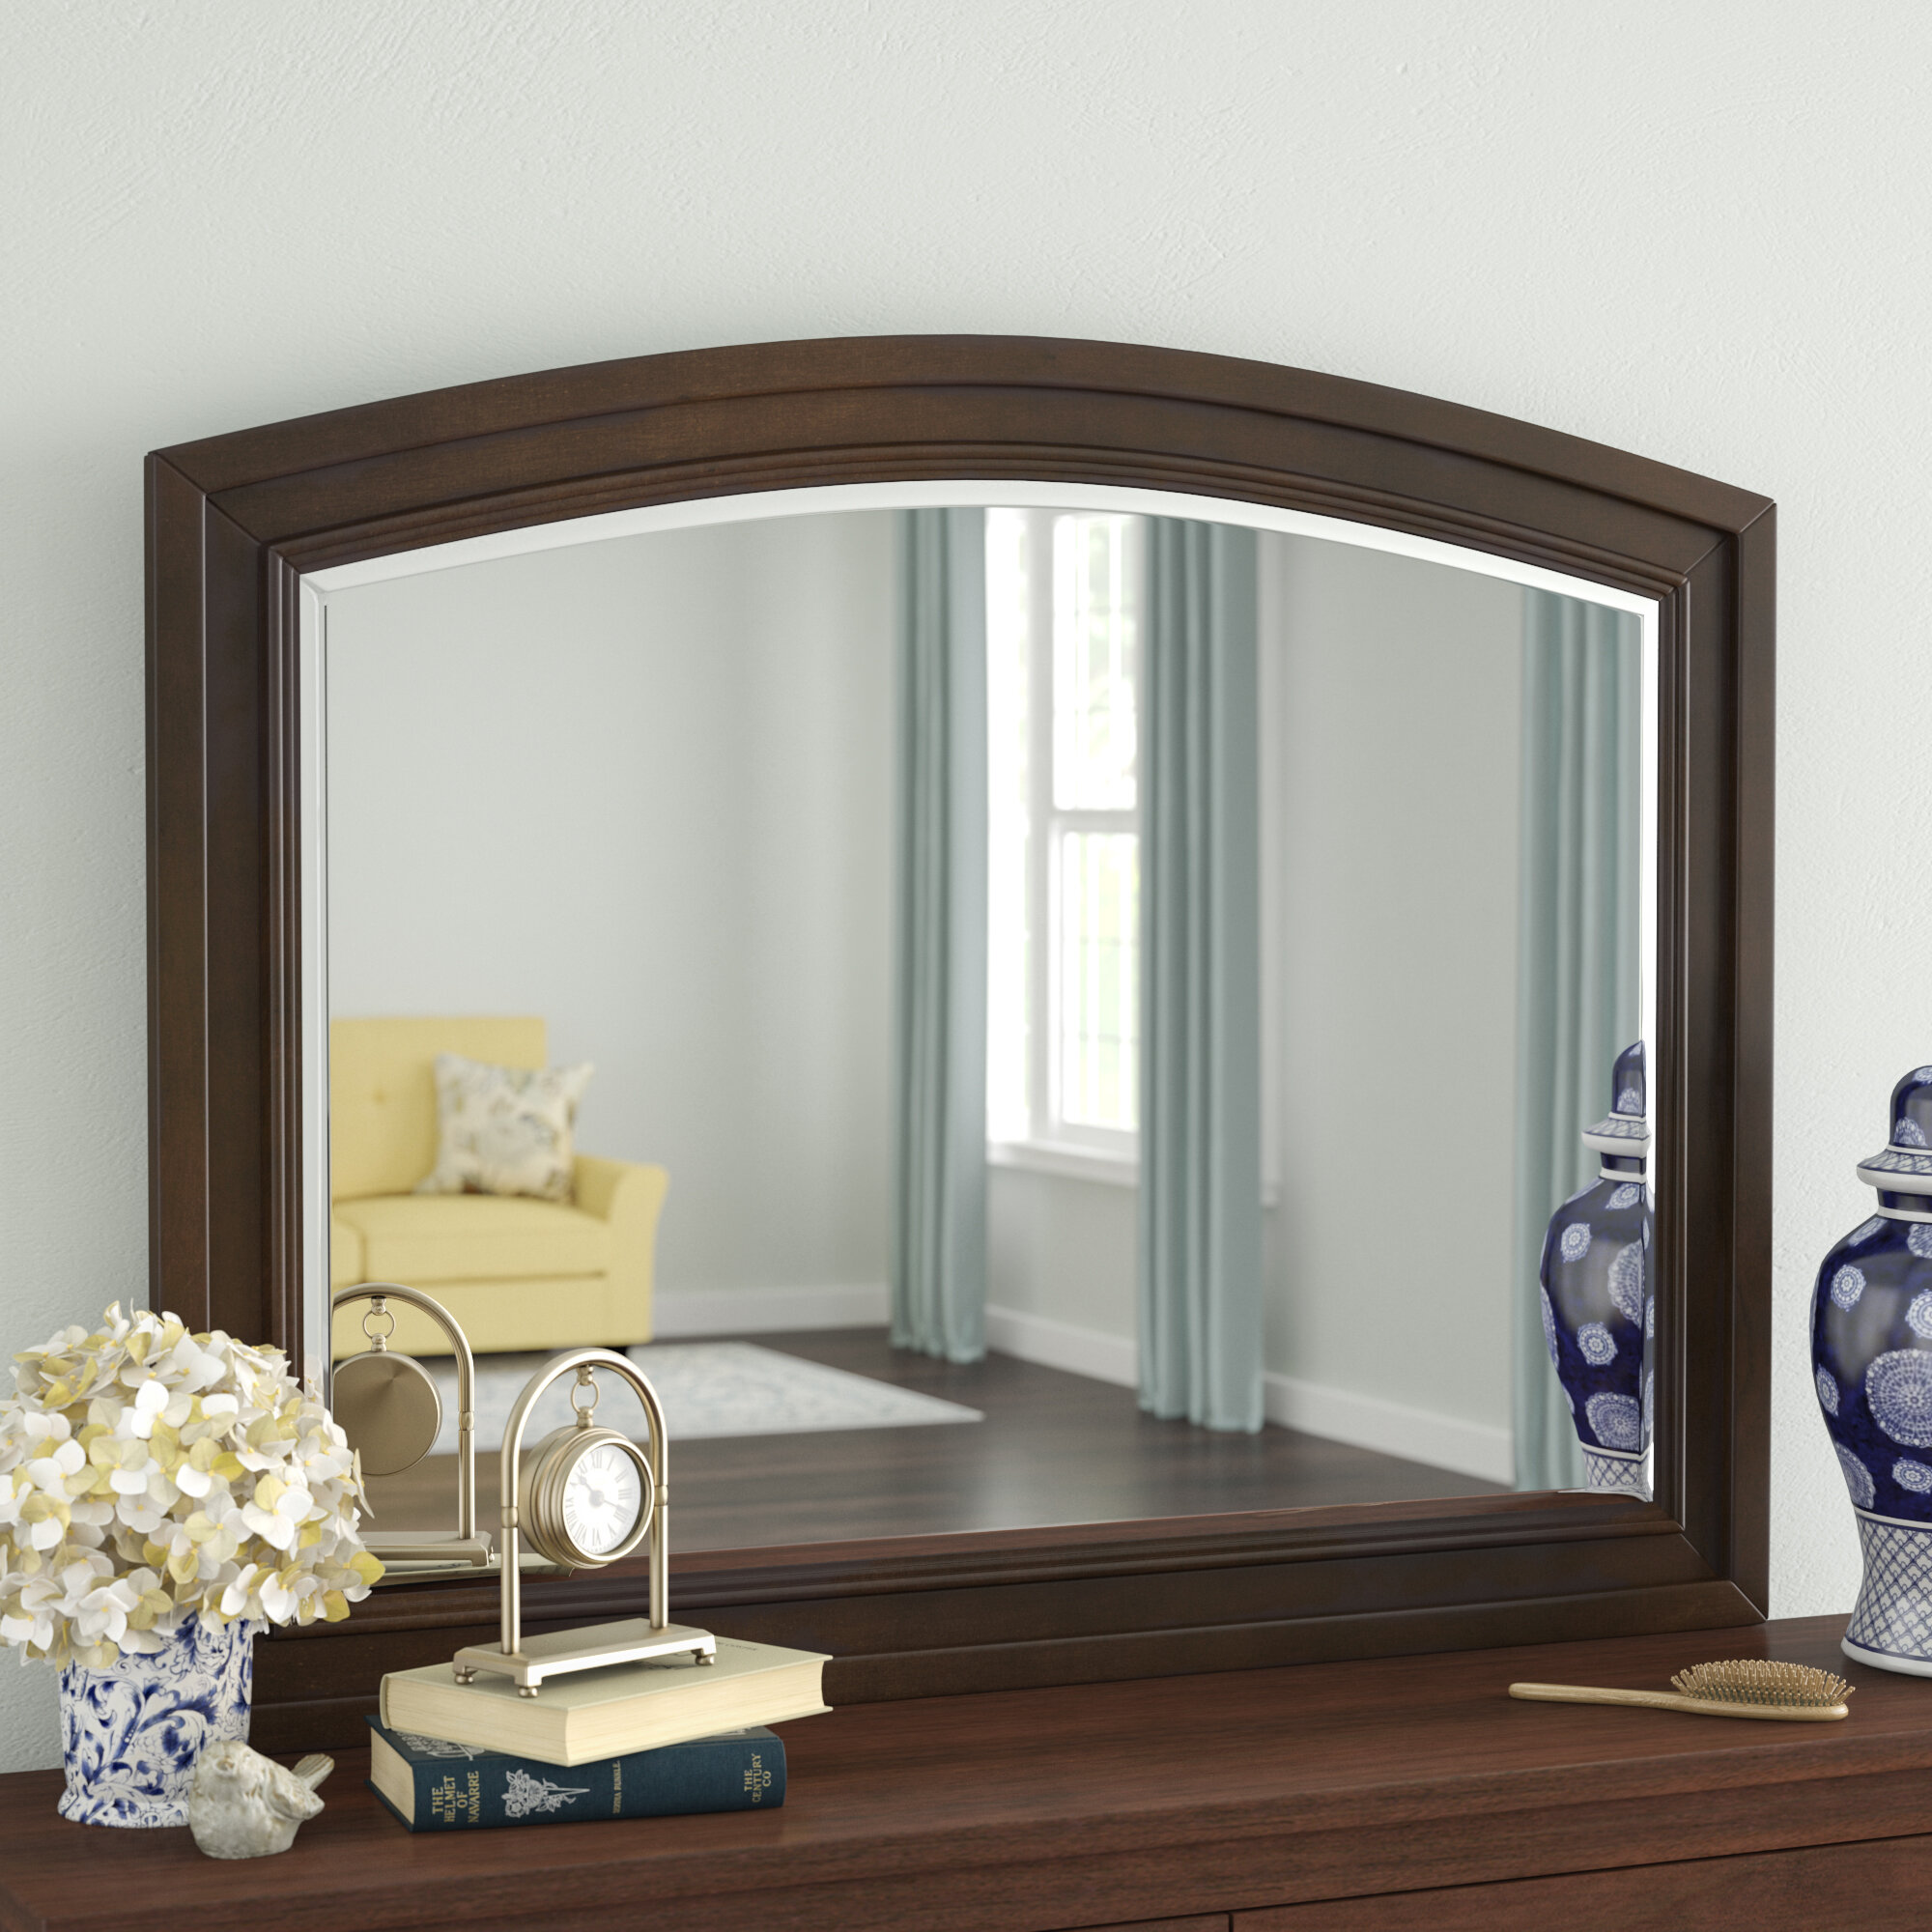 Darby Home Co Beadling Arched Dresser Mirror | Wayfair